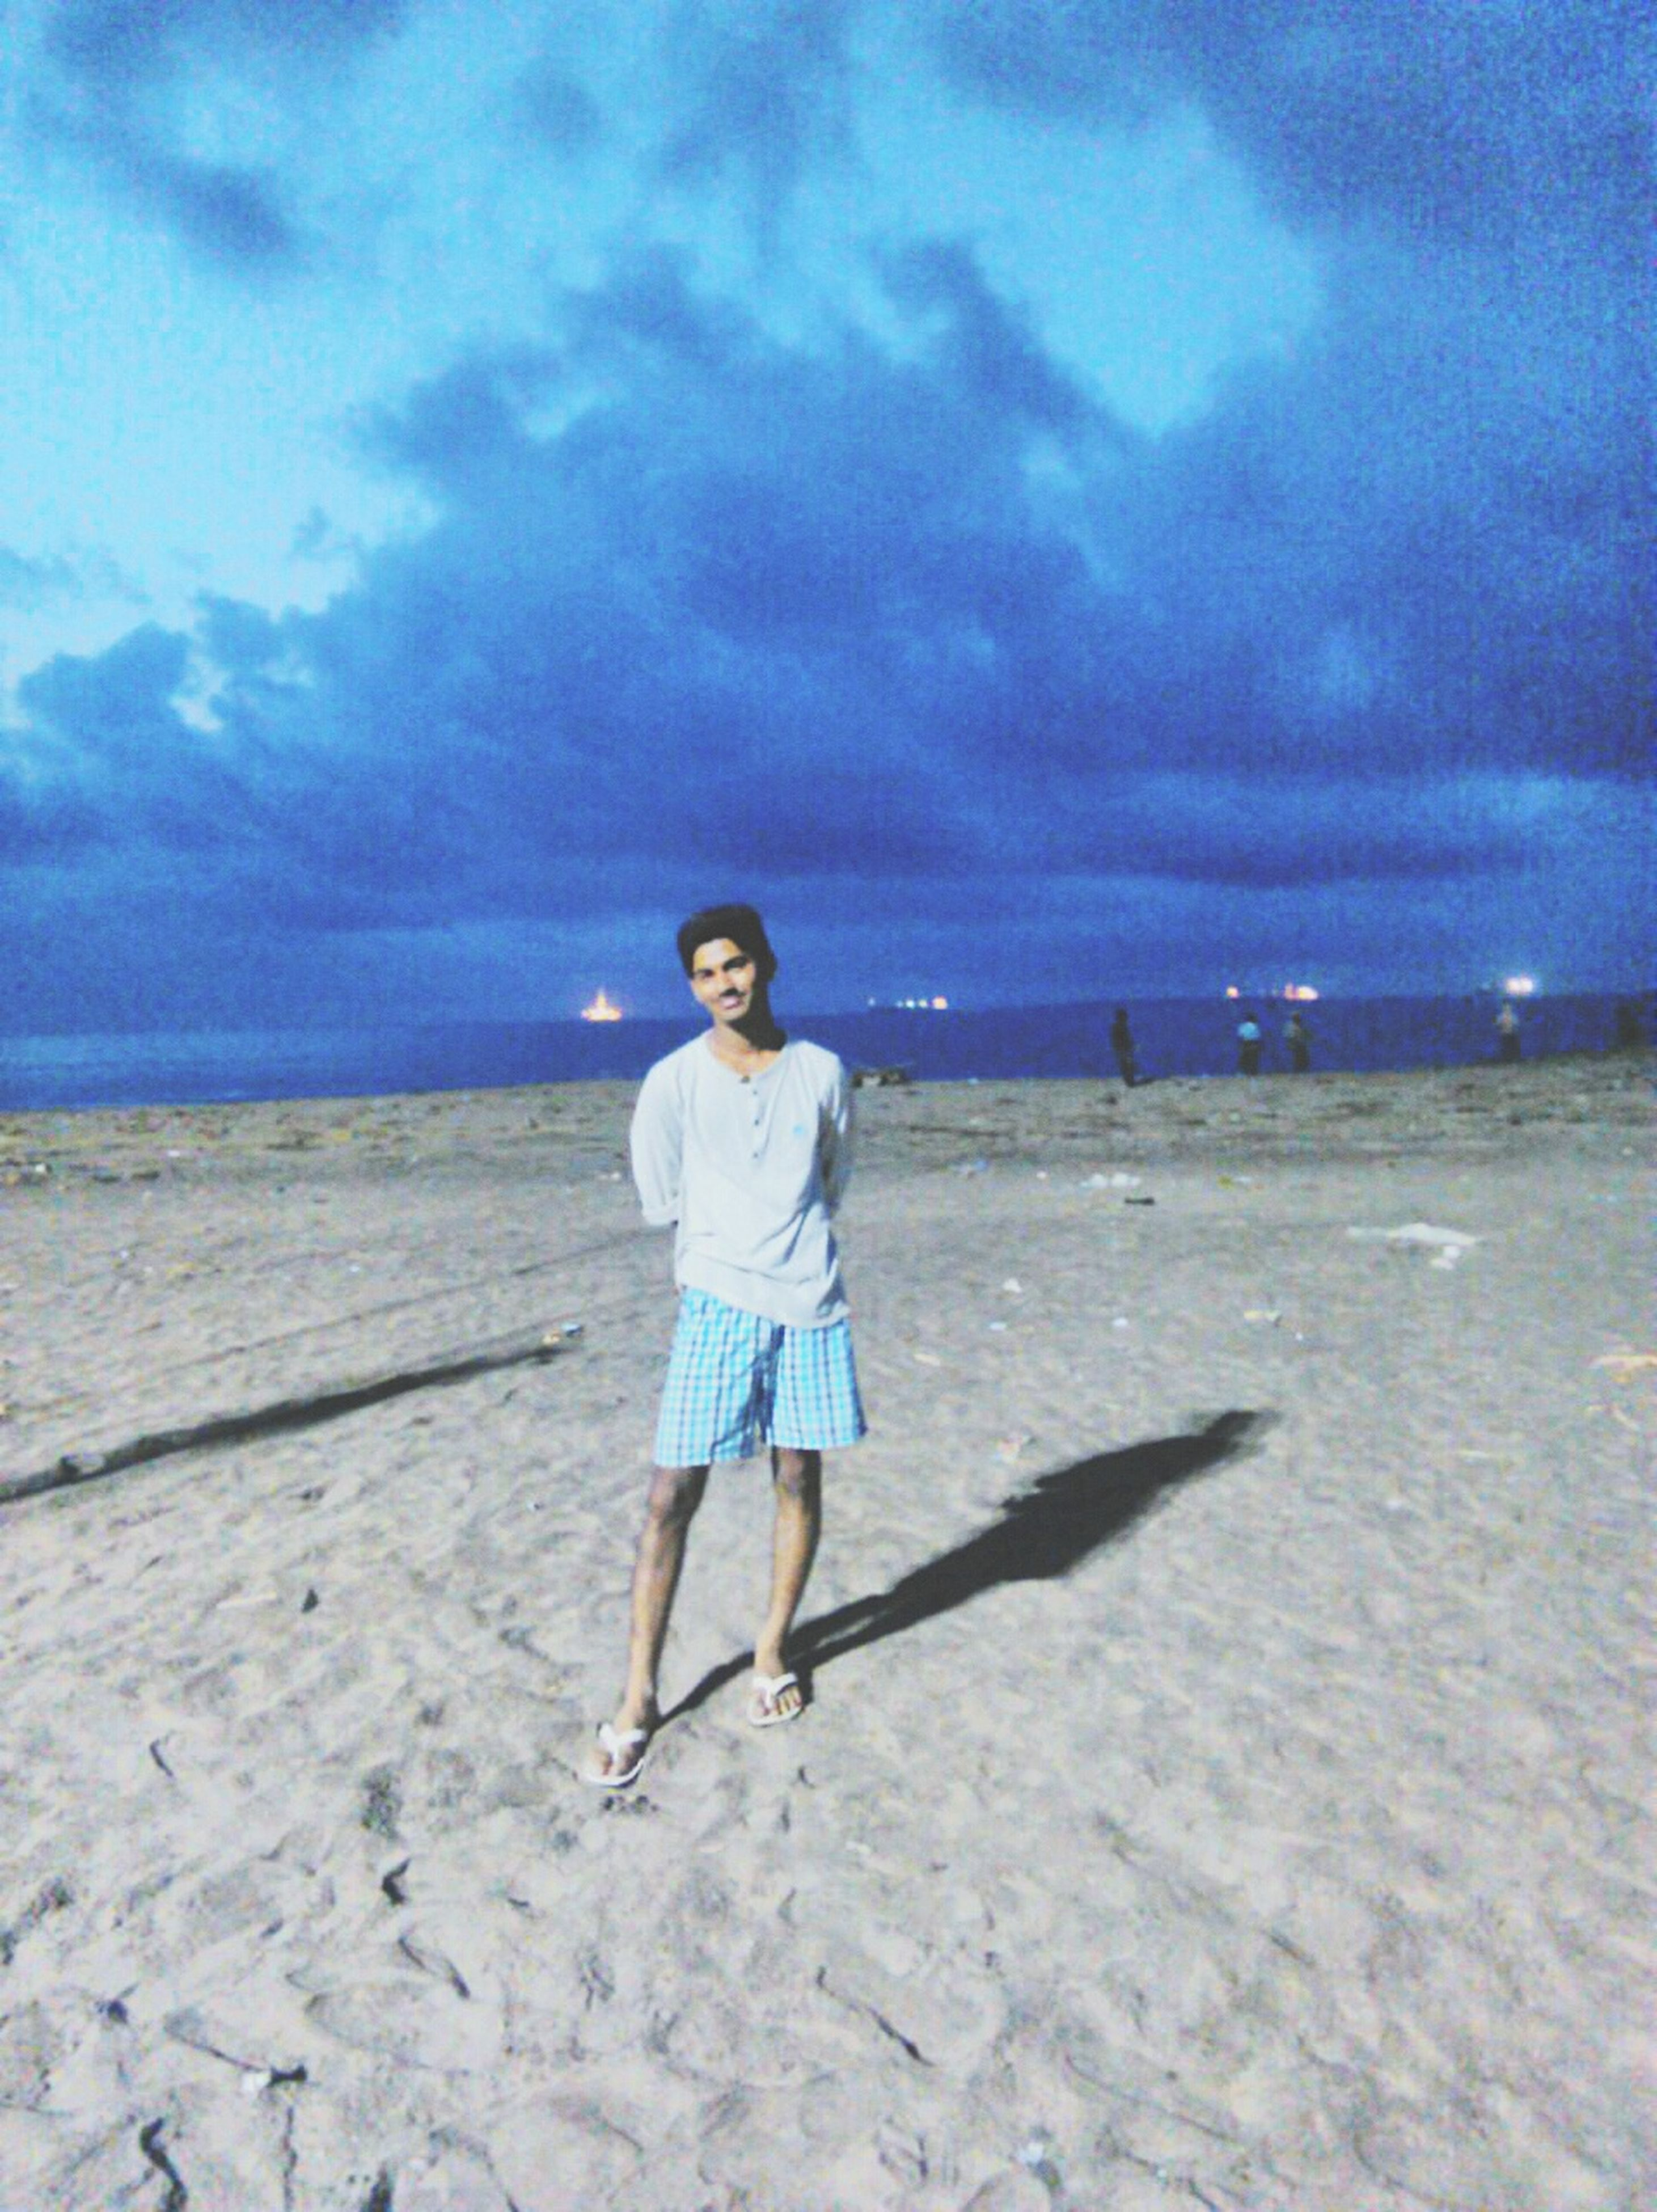 full length, sky, cloud - sky, beach, sea, lifestyles, casual clothing, leisure activity, rear view, horizon over water, shore, standing, cloudy, water, tranquility, tranquil scene, beauty in nature, nature